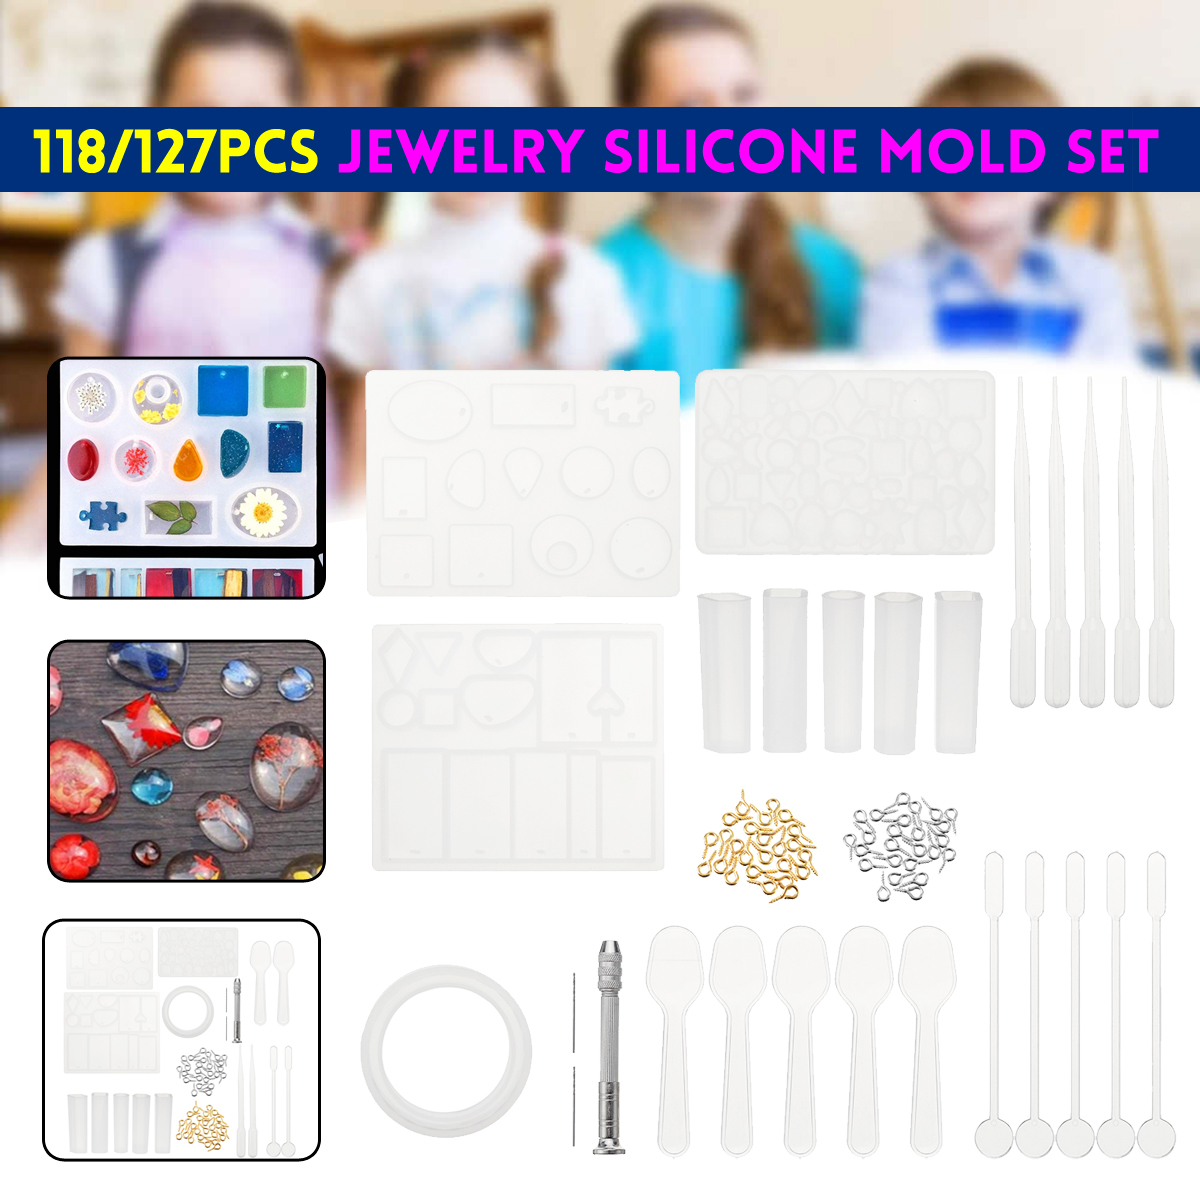 Yalulu 6Pcs Round Square Silicone Mold Mould Casting Resin for Jewelry Pendant Bangle Bracelet Making Mold DIY Hand Craft Tool